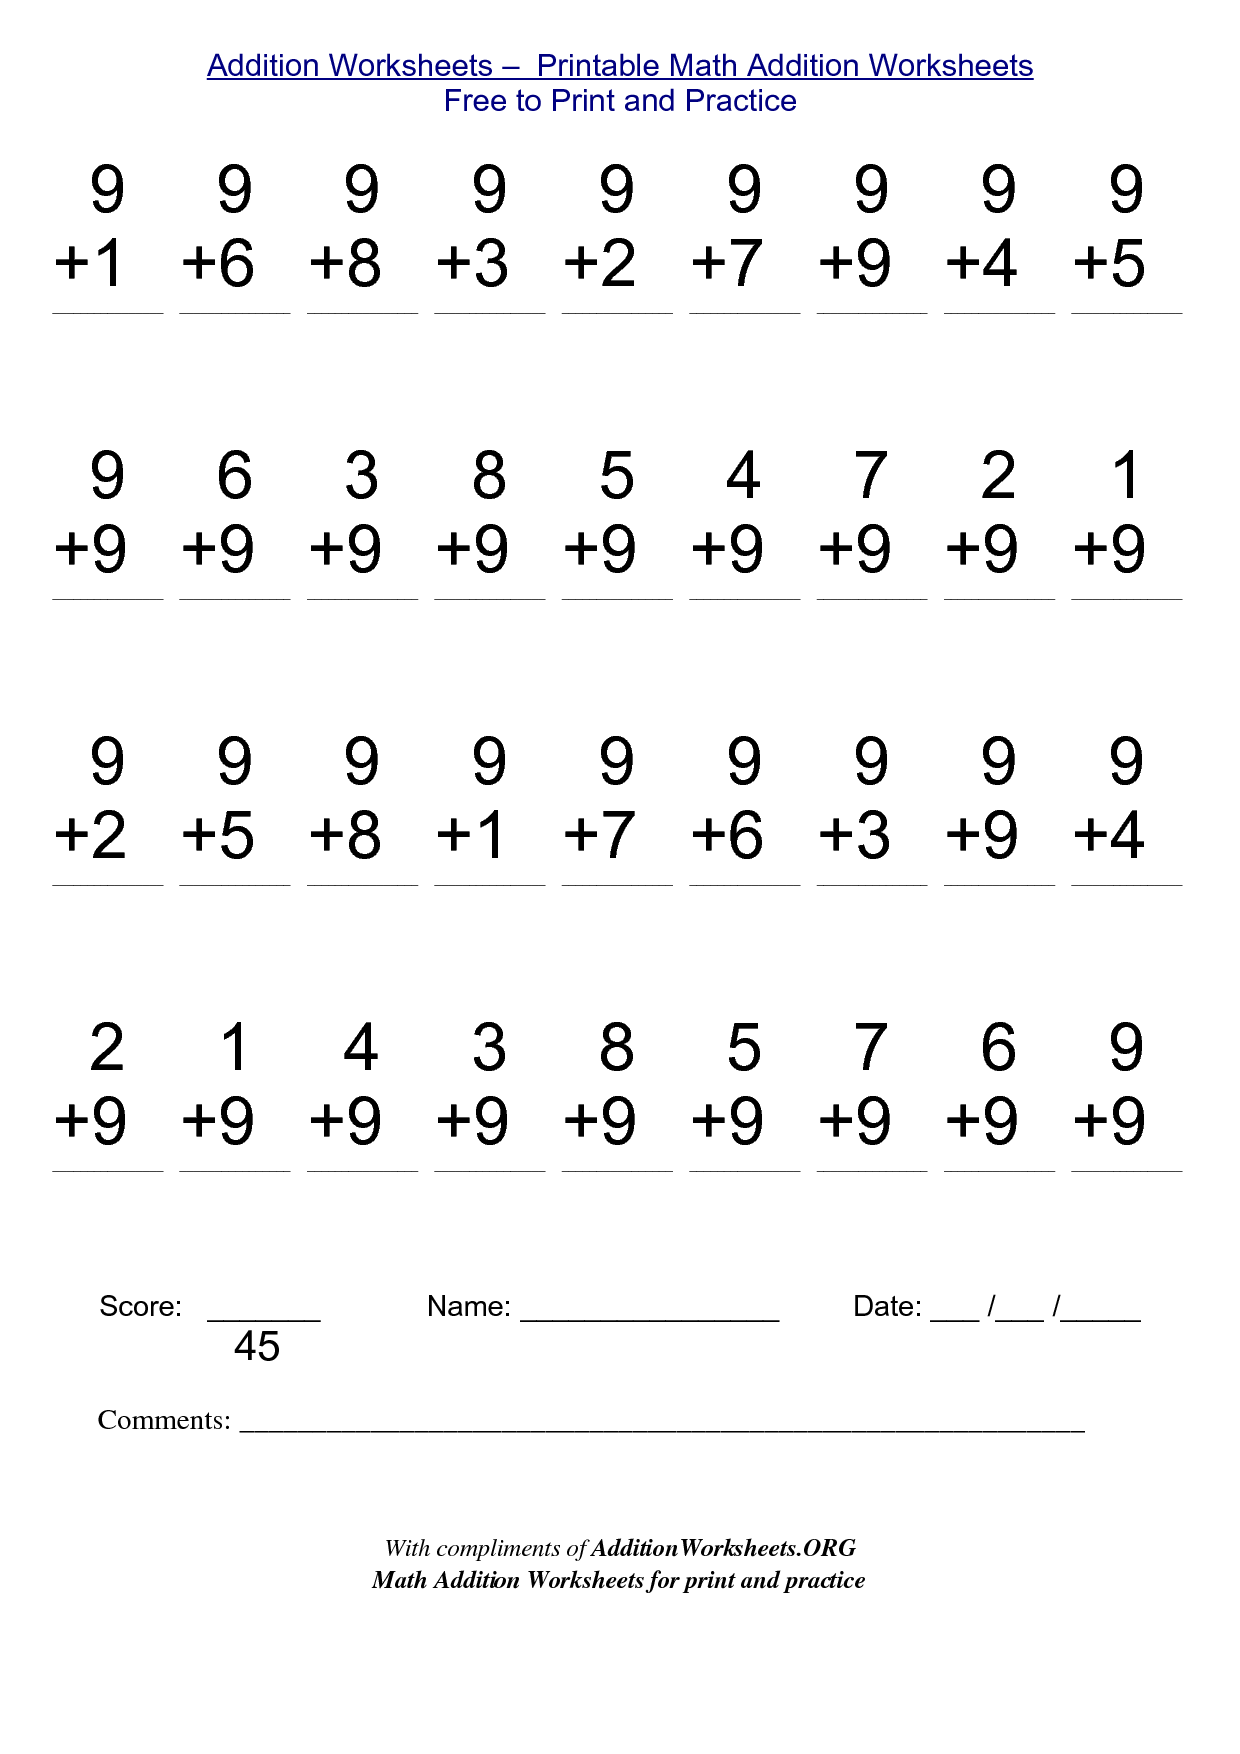 Printable Math Addition Worksheets